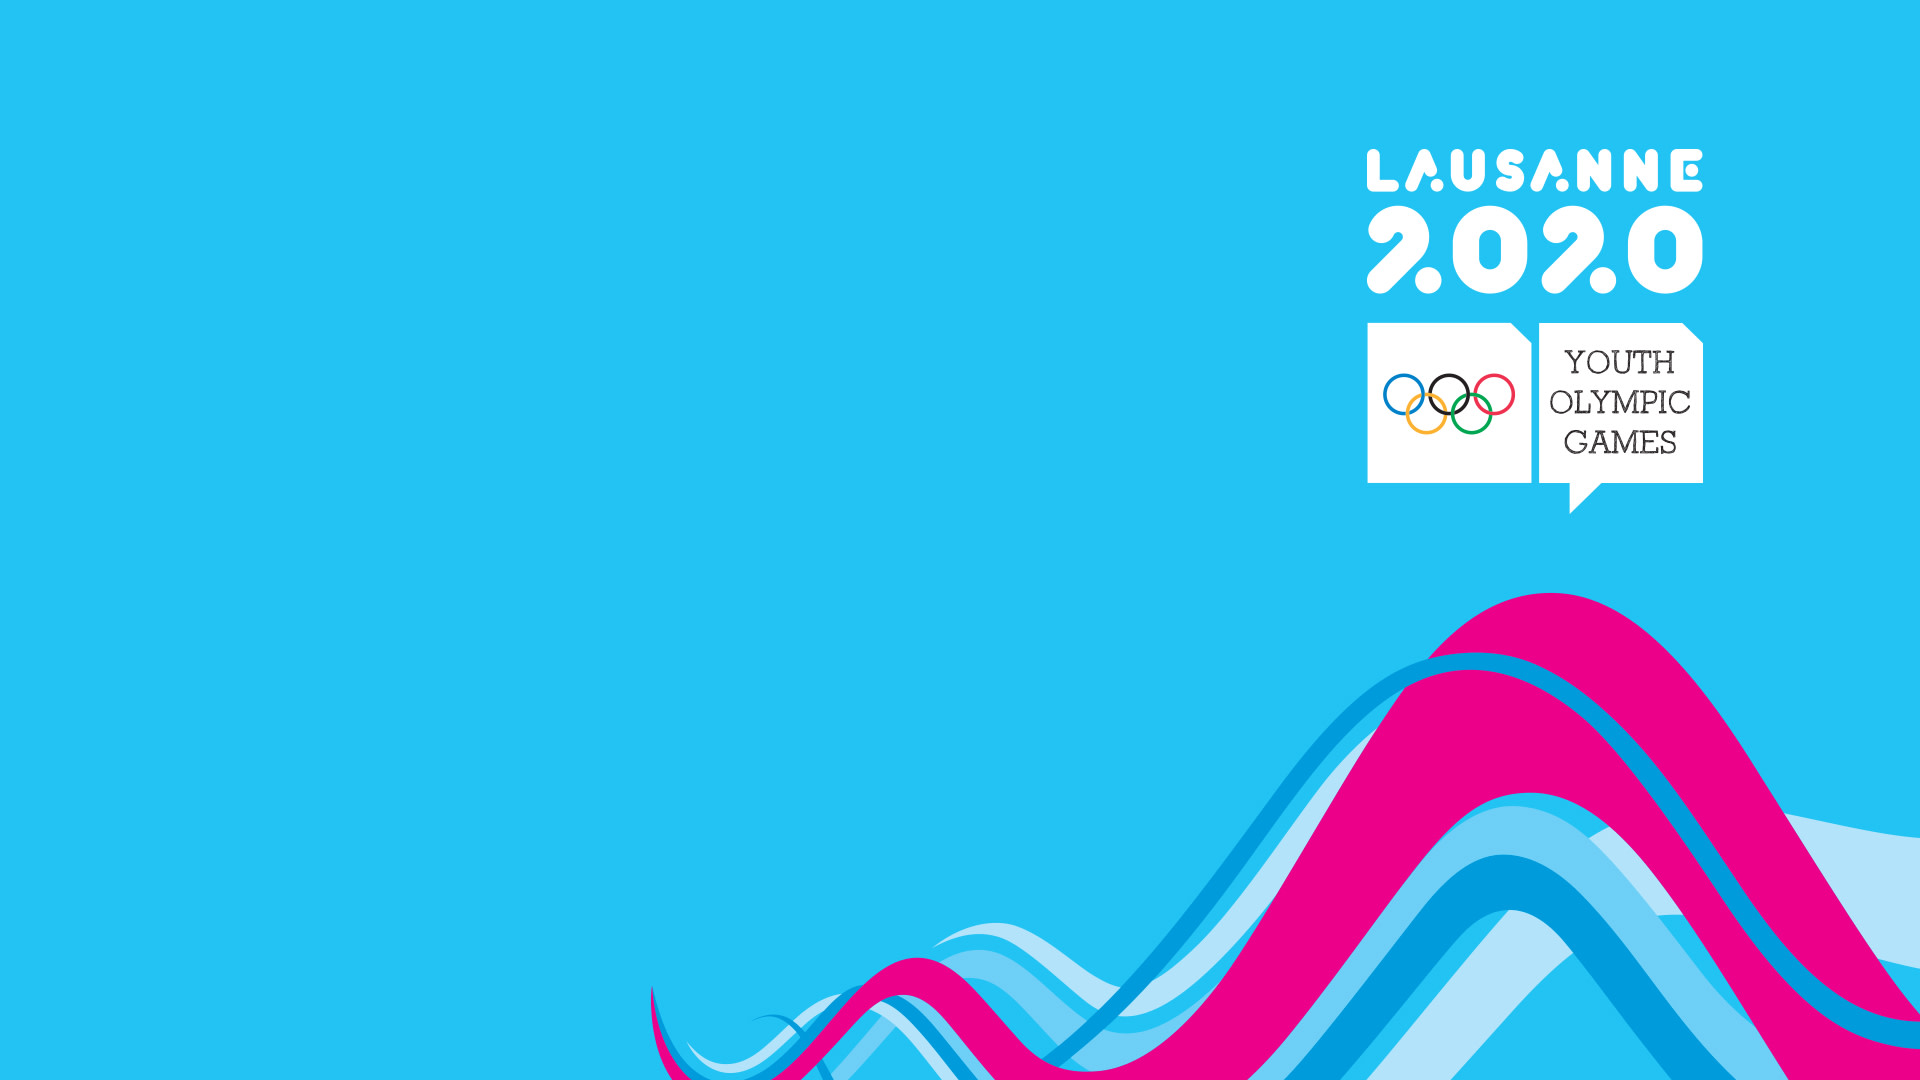 Figure Skating At The 2020 Winter Olympics.A Look Ahead To The Lausanne 2020 Winter Youth Olympic Games